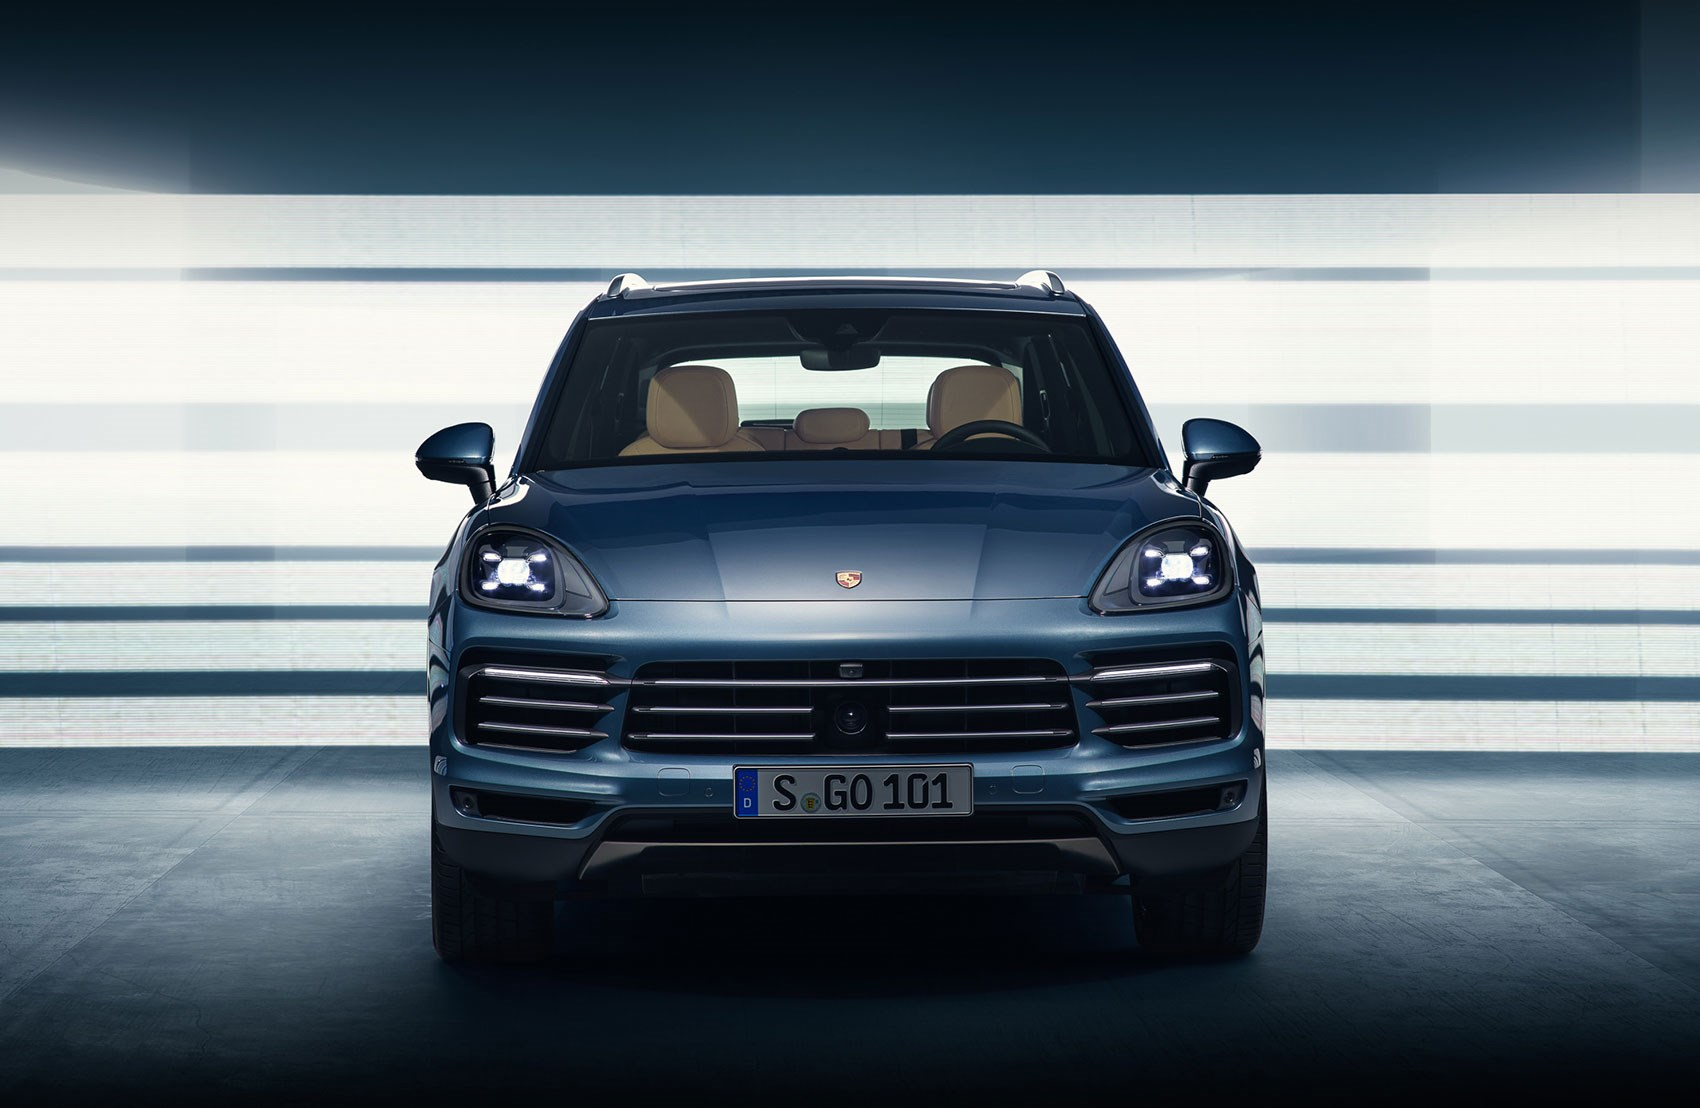 Front End Of New Porsche Cayenne Spoiled By Unsightly Radar Snout